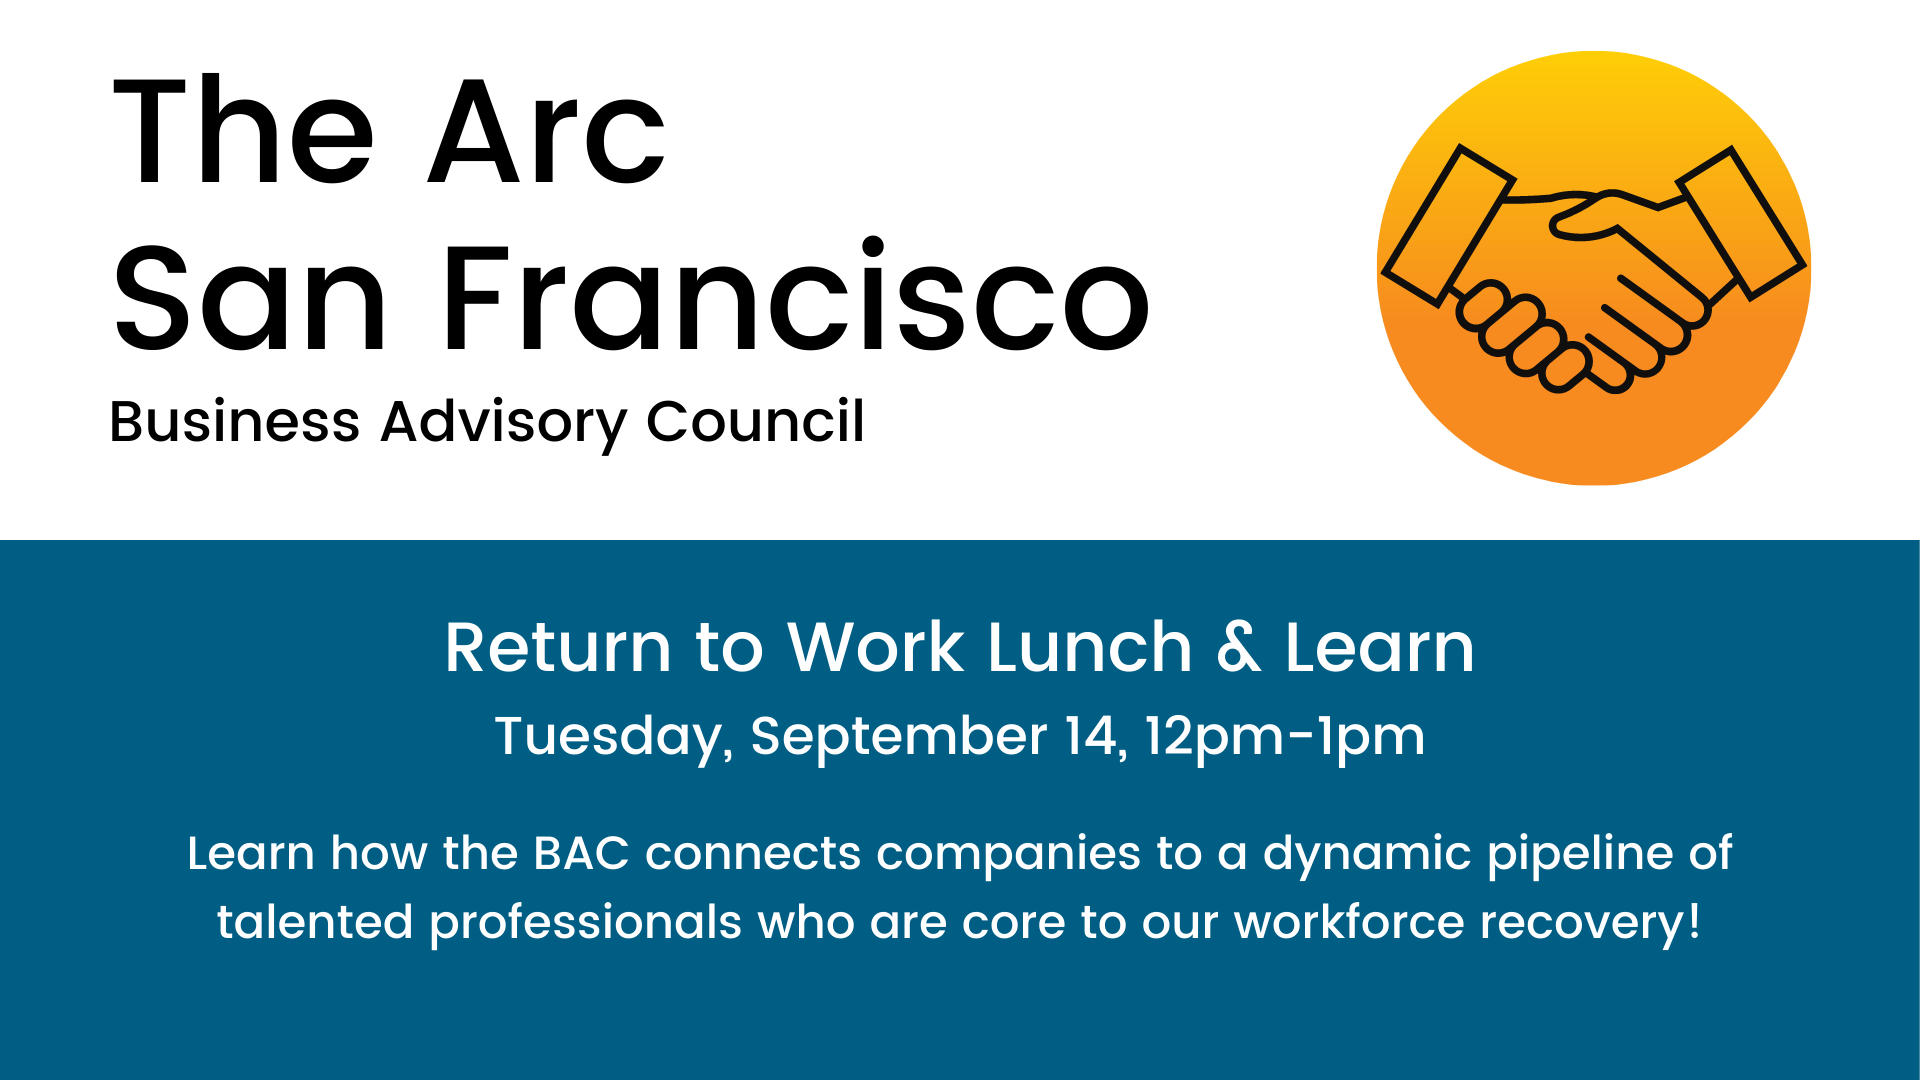 The Arc San Francisco Business Advisory Council Return to Work Lunch & Learn Tuesday, September 14, 12pm-1pm. Learn how the BAC connects companies to a dynamic pipeline of talented professionals who are core to our workforce recovery!